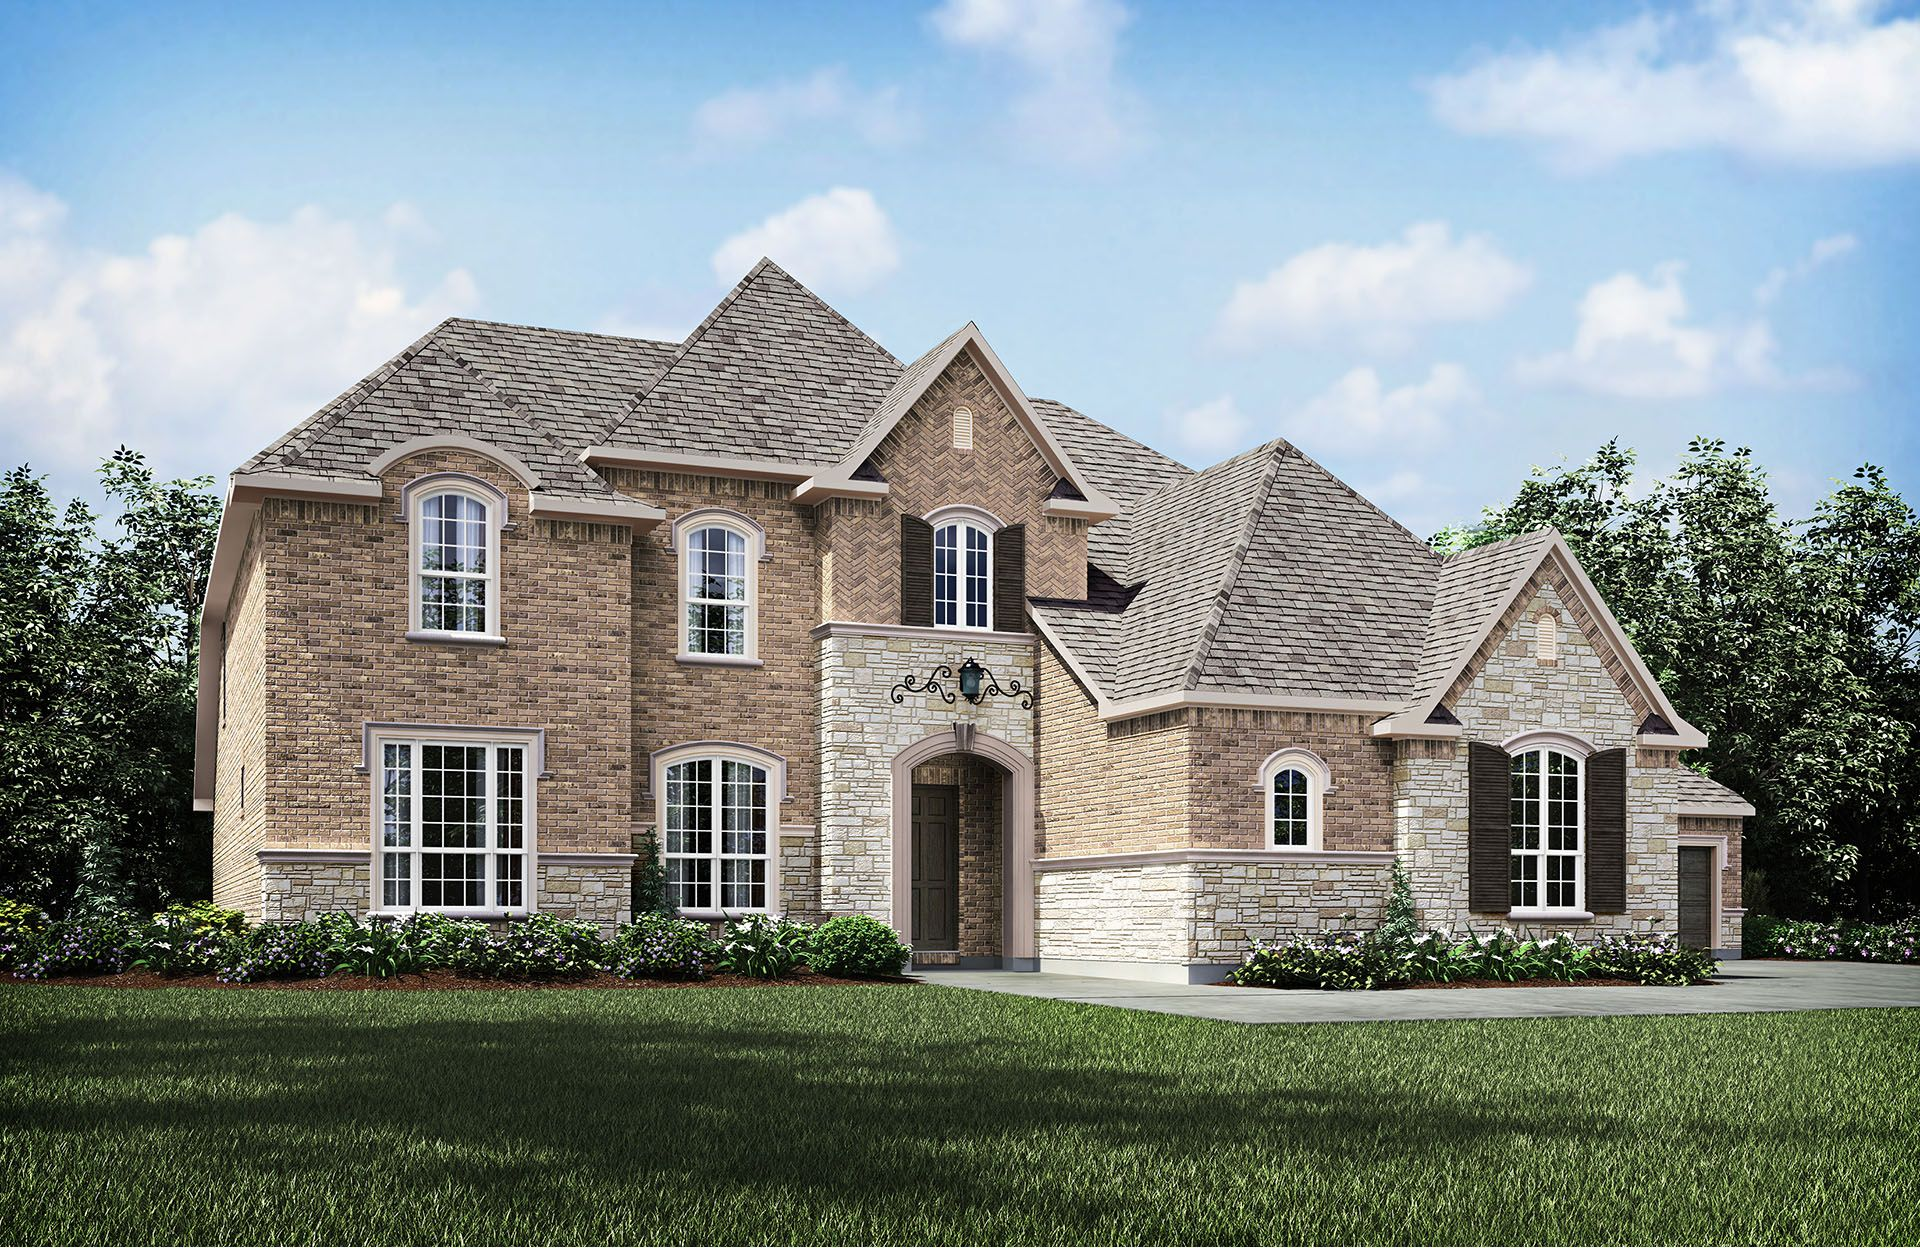 Single Family for Active at Elmsdale 821 Hawk Wood Lane Prosper, Texas 75078 United States